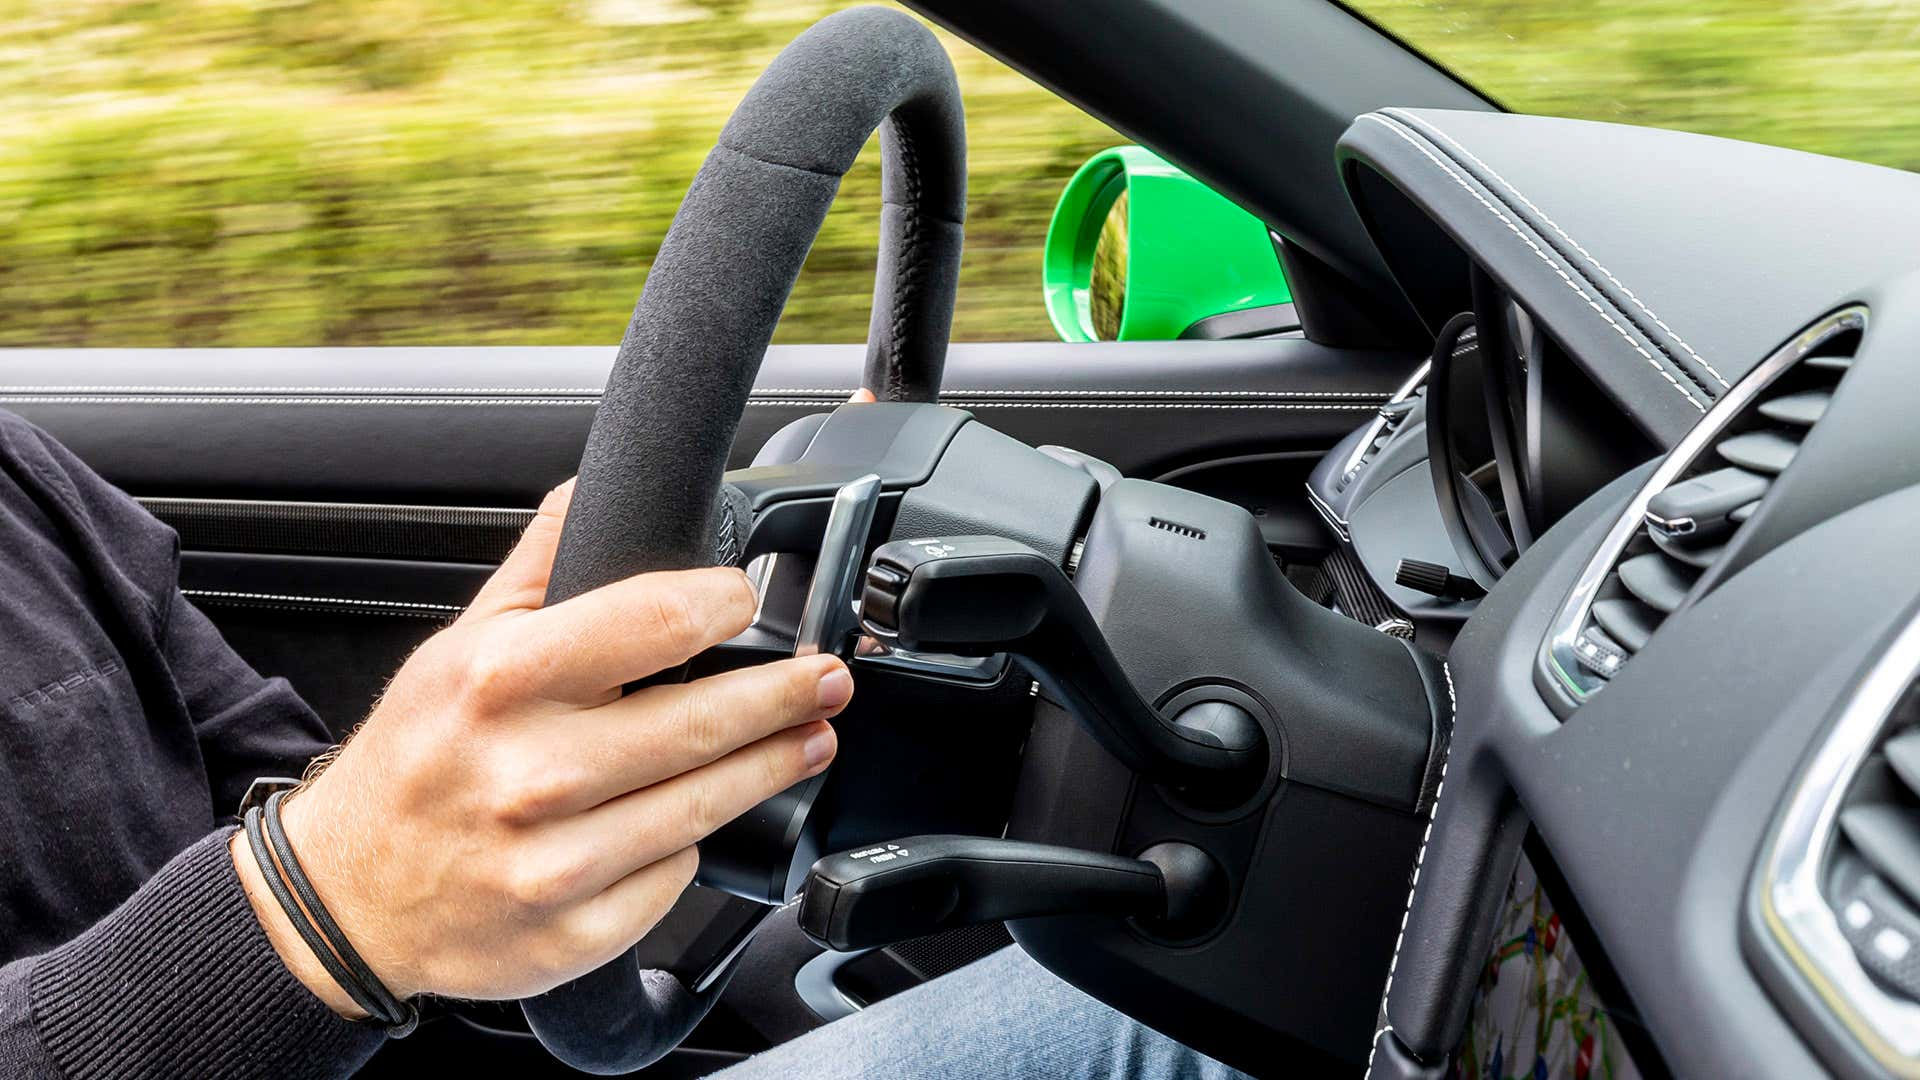 A driver uses the right-hand paddle shifter in a Porsche 911.